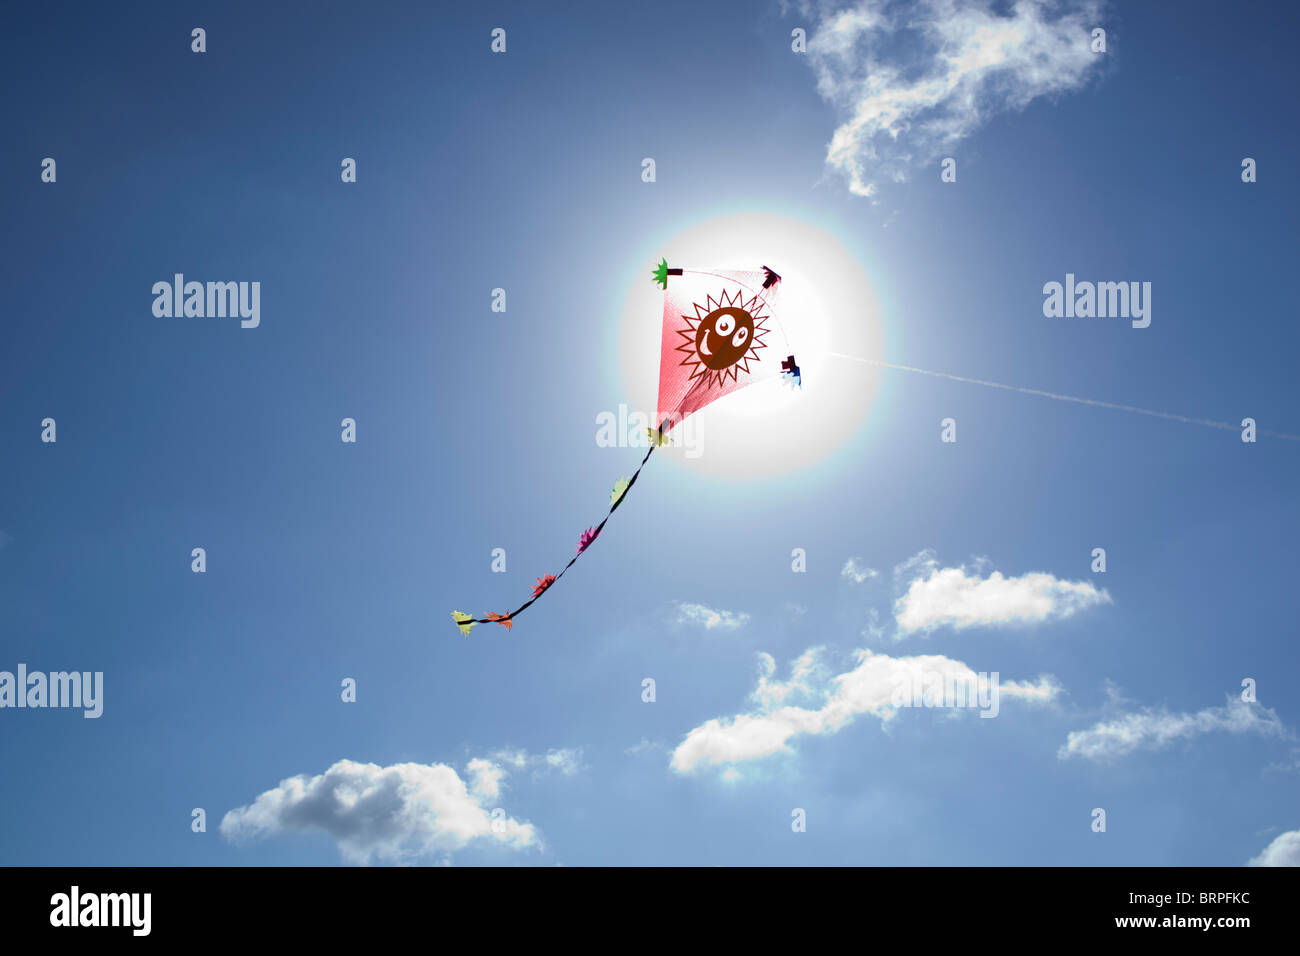 Kite in front of the sun Stock Photo